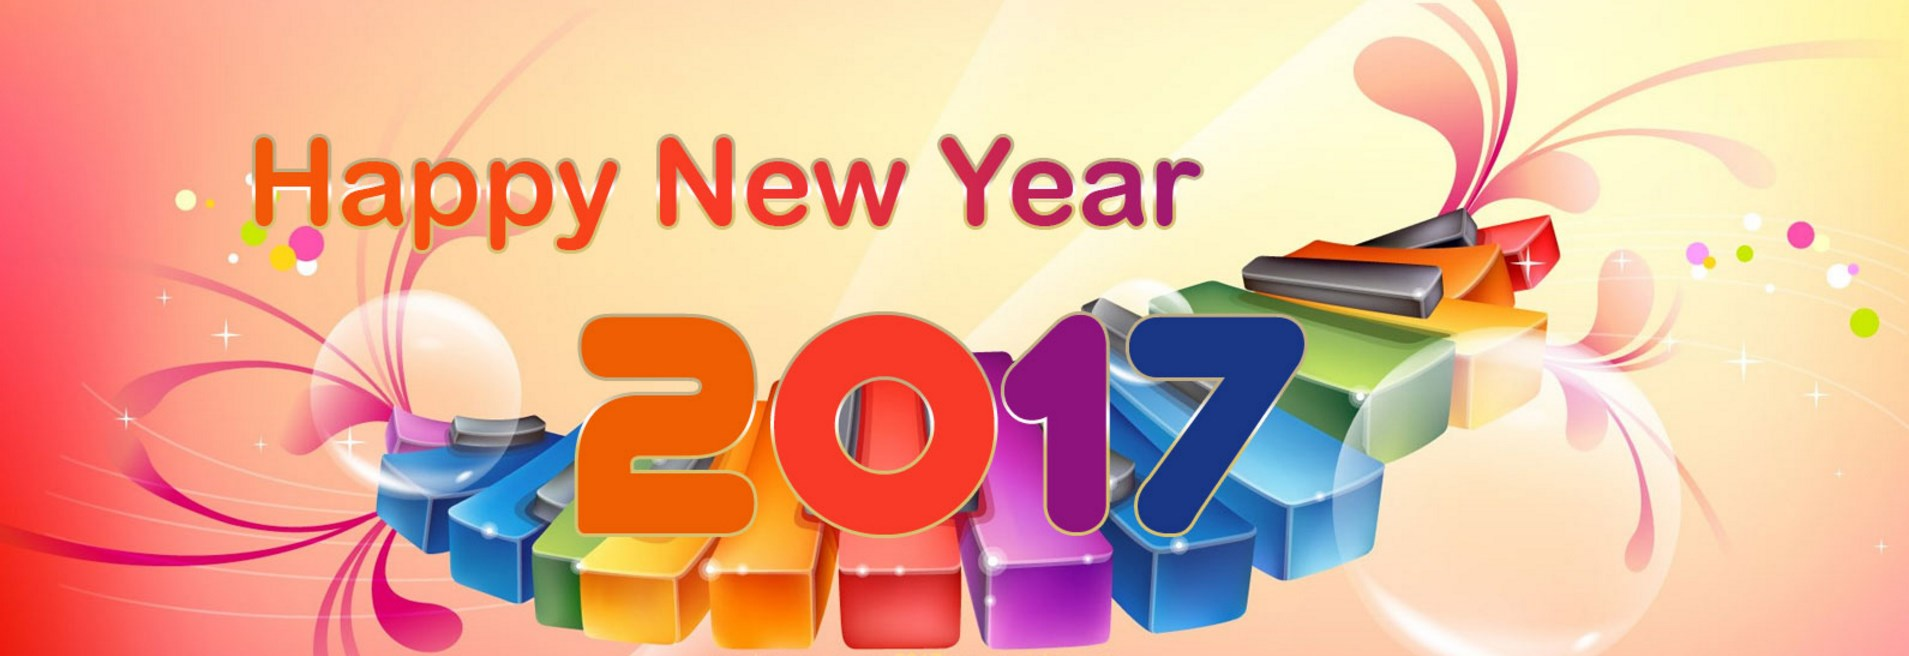 New Year 2017 Facebook Covers